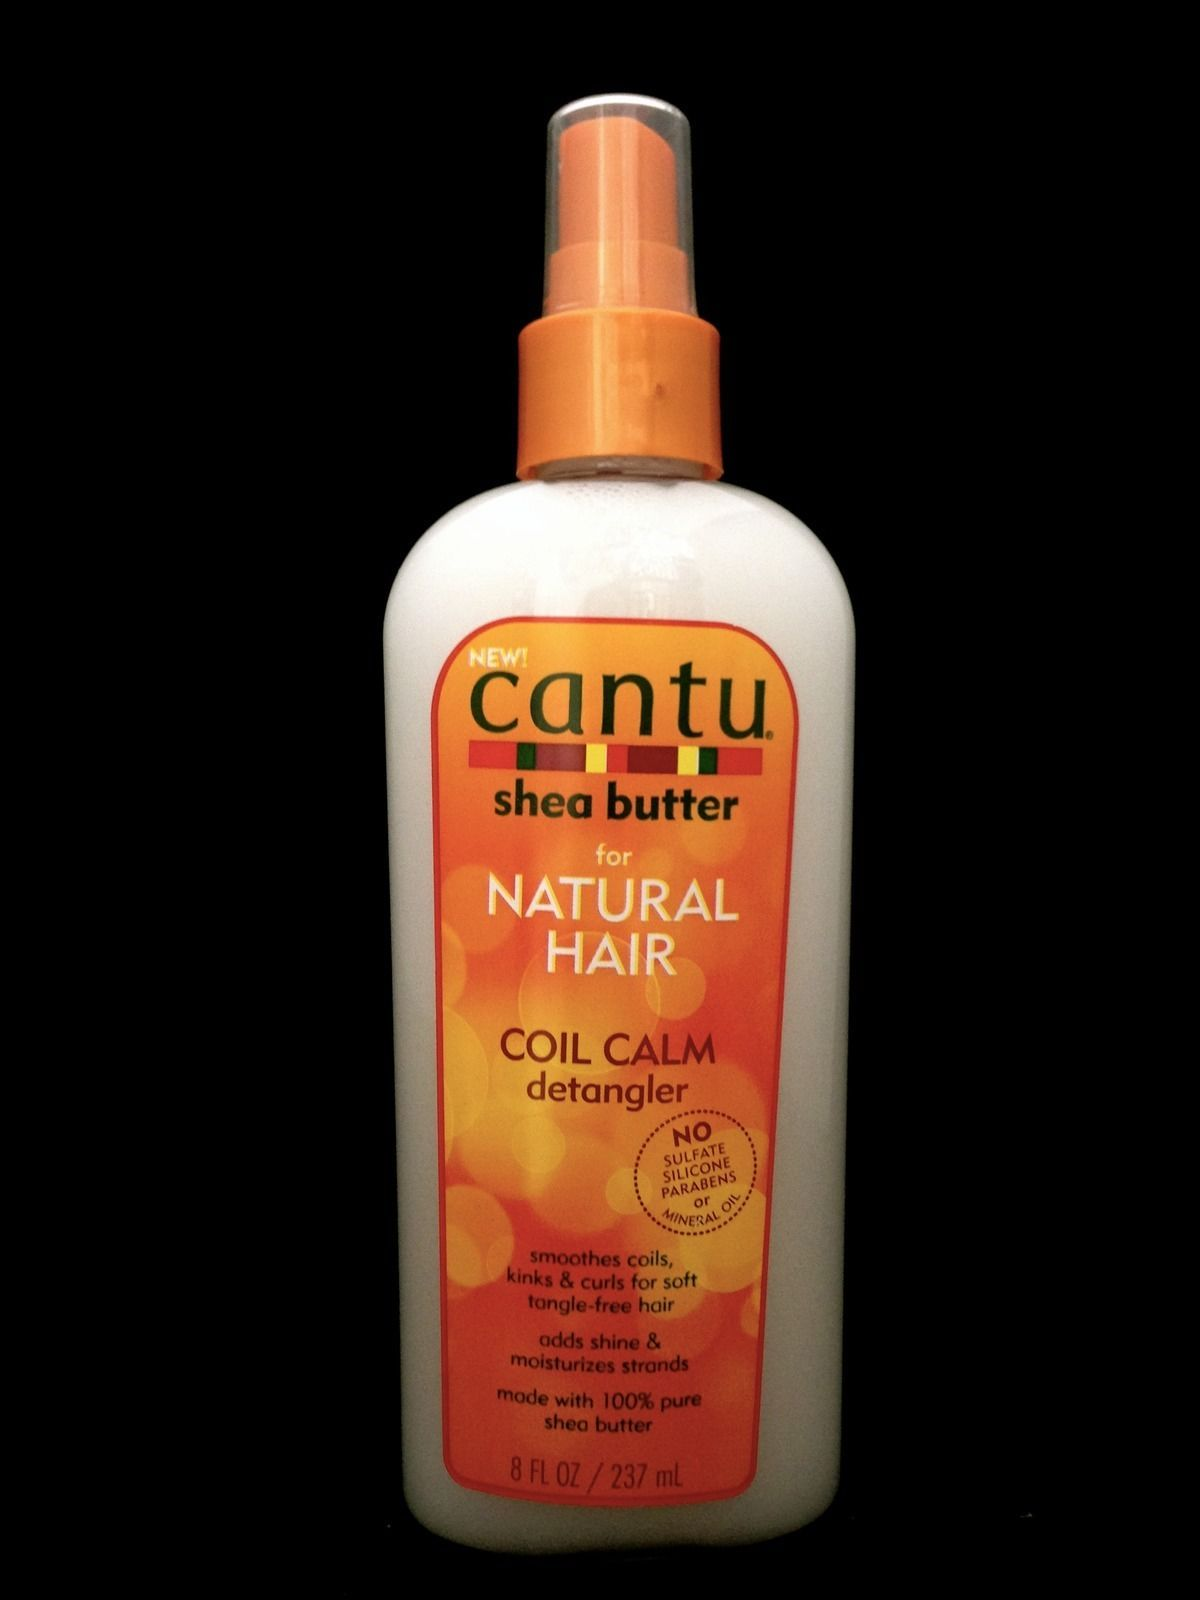 CANTU SHEA BUTTER FOR NATURAL HAIR COIL CALM DETANGLER NO SULFATE PARABEN  8oz